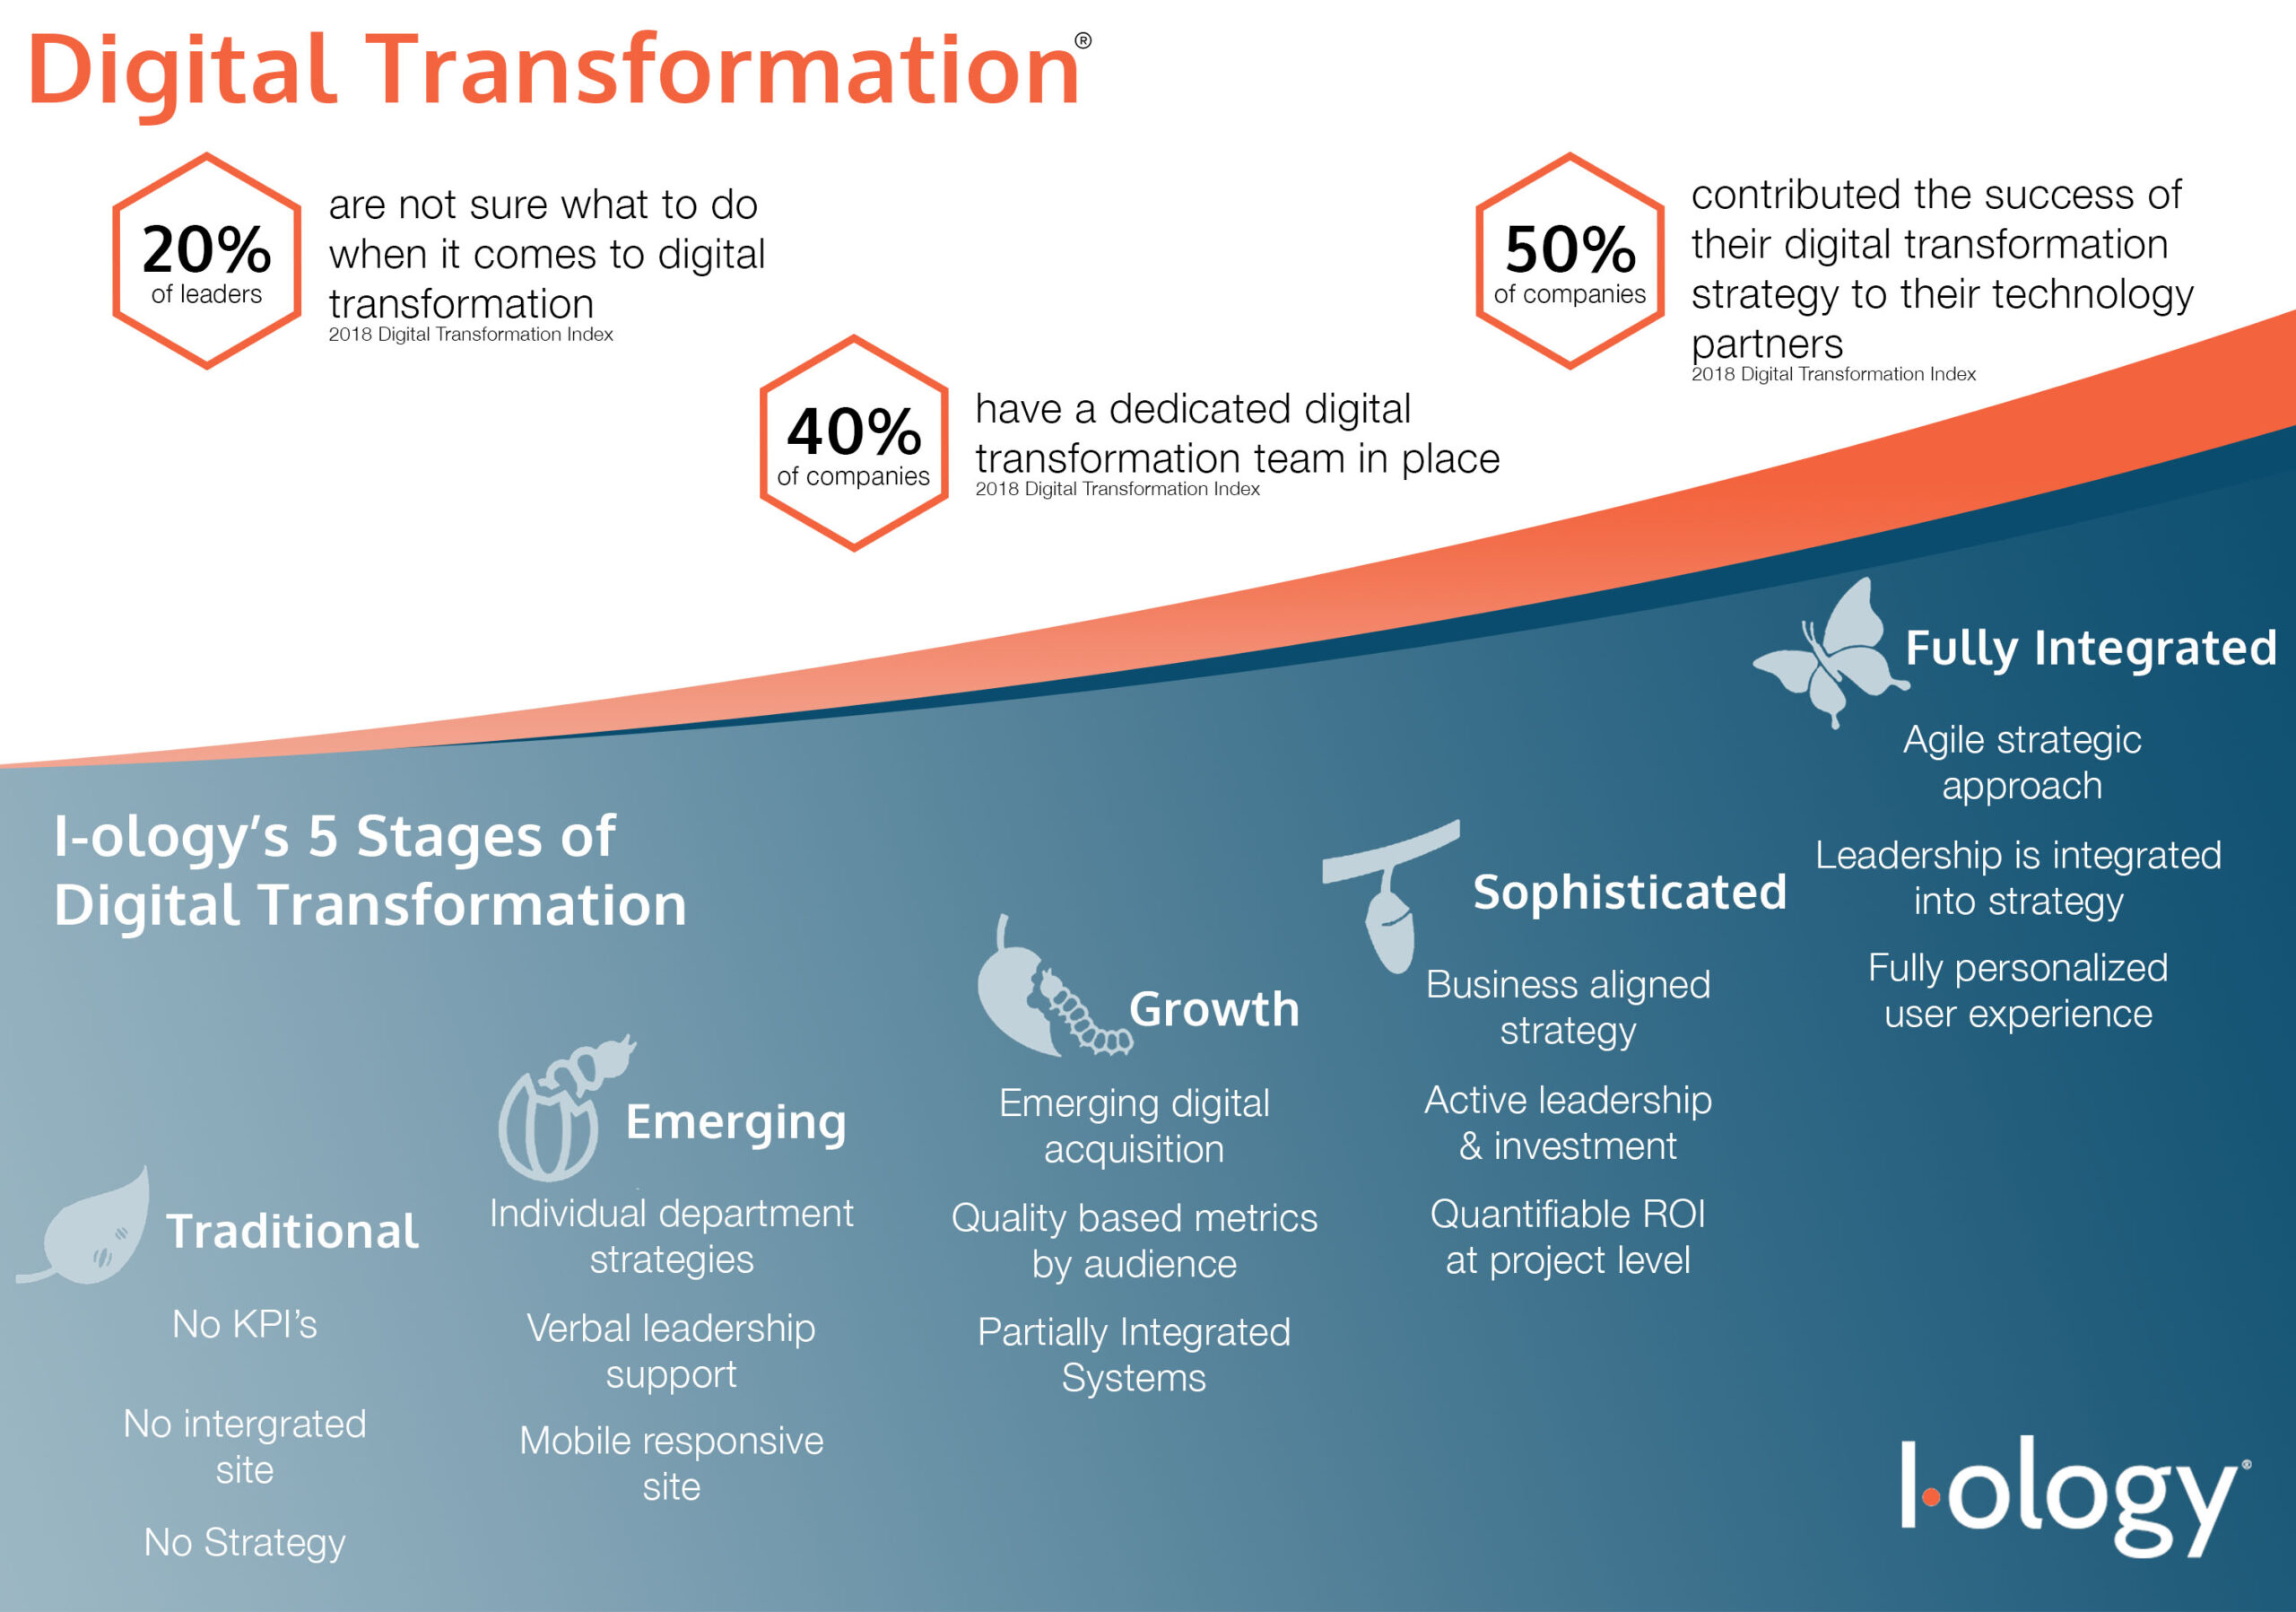 5 Stages of Digital Transformation Infographic